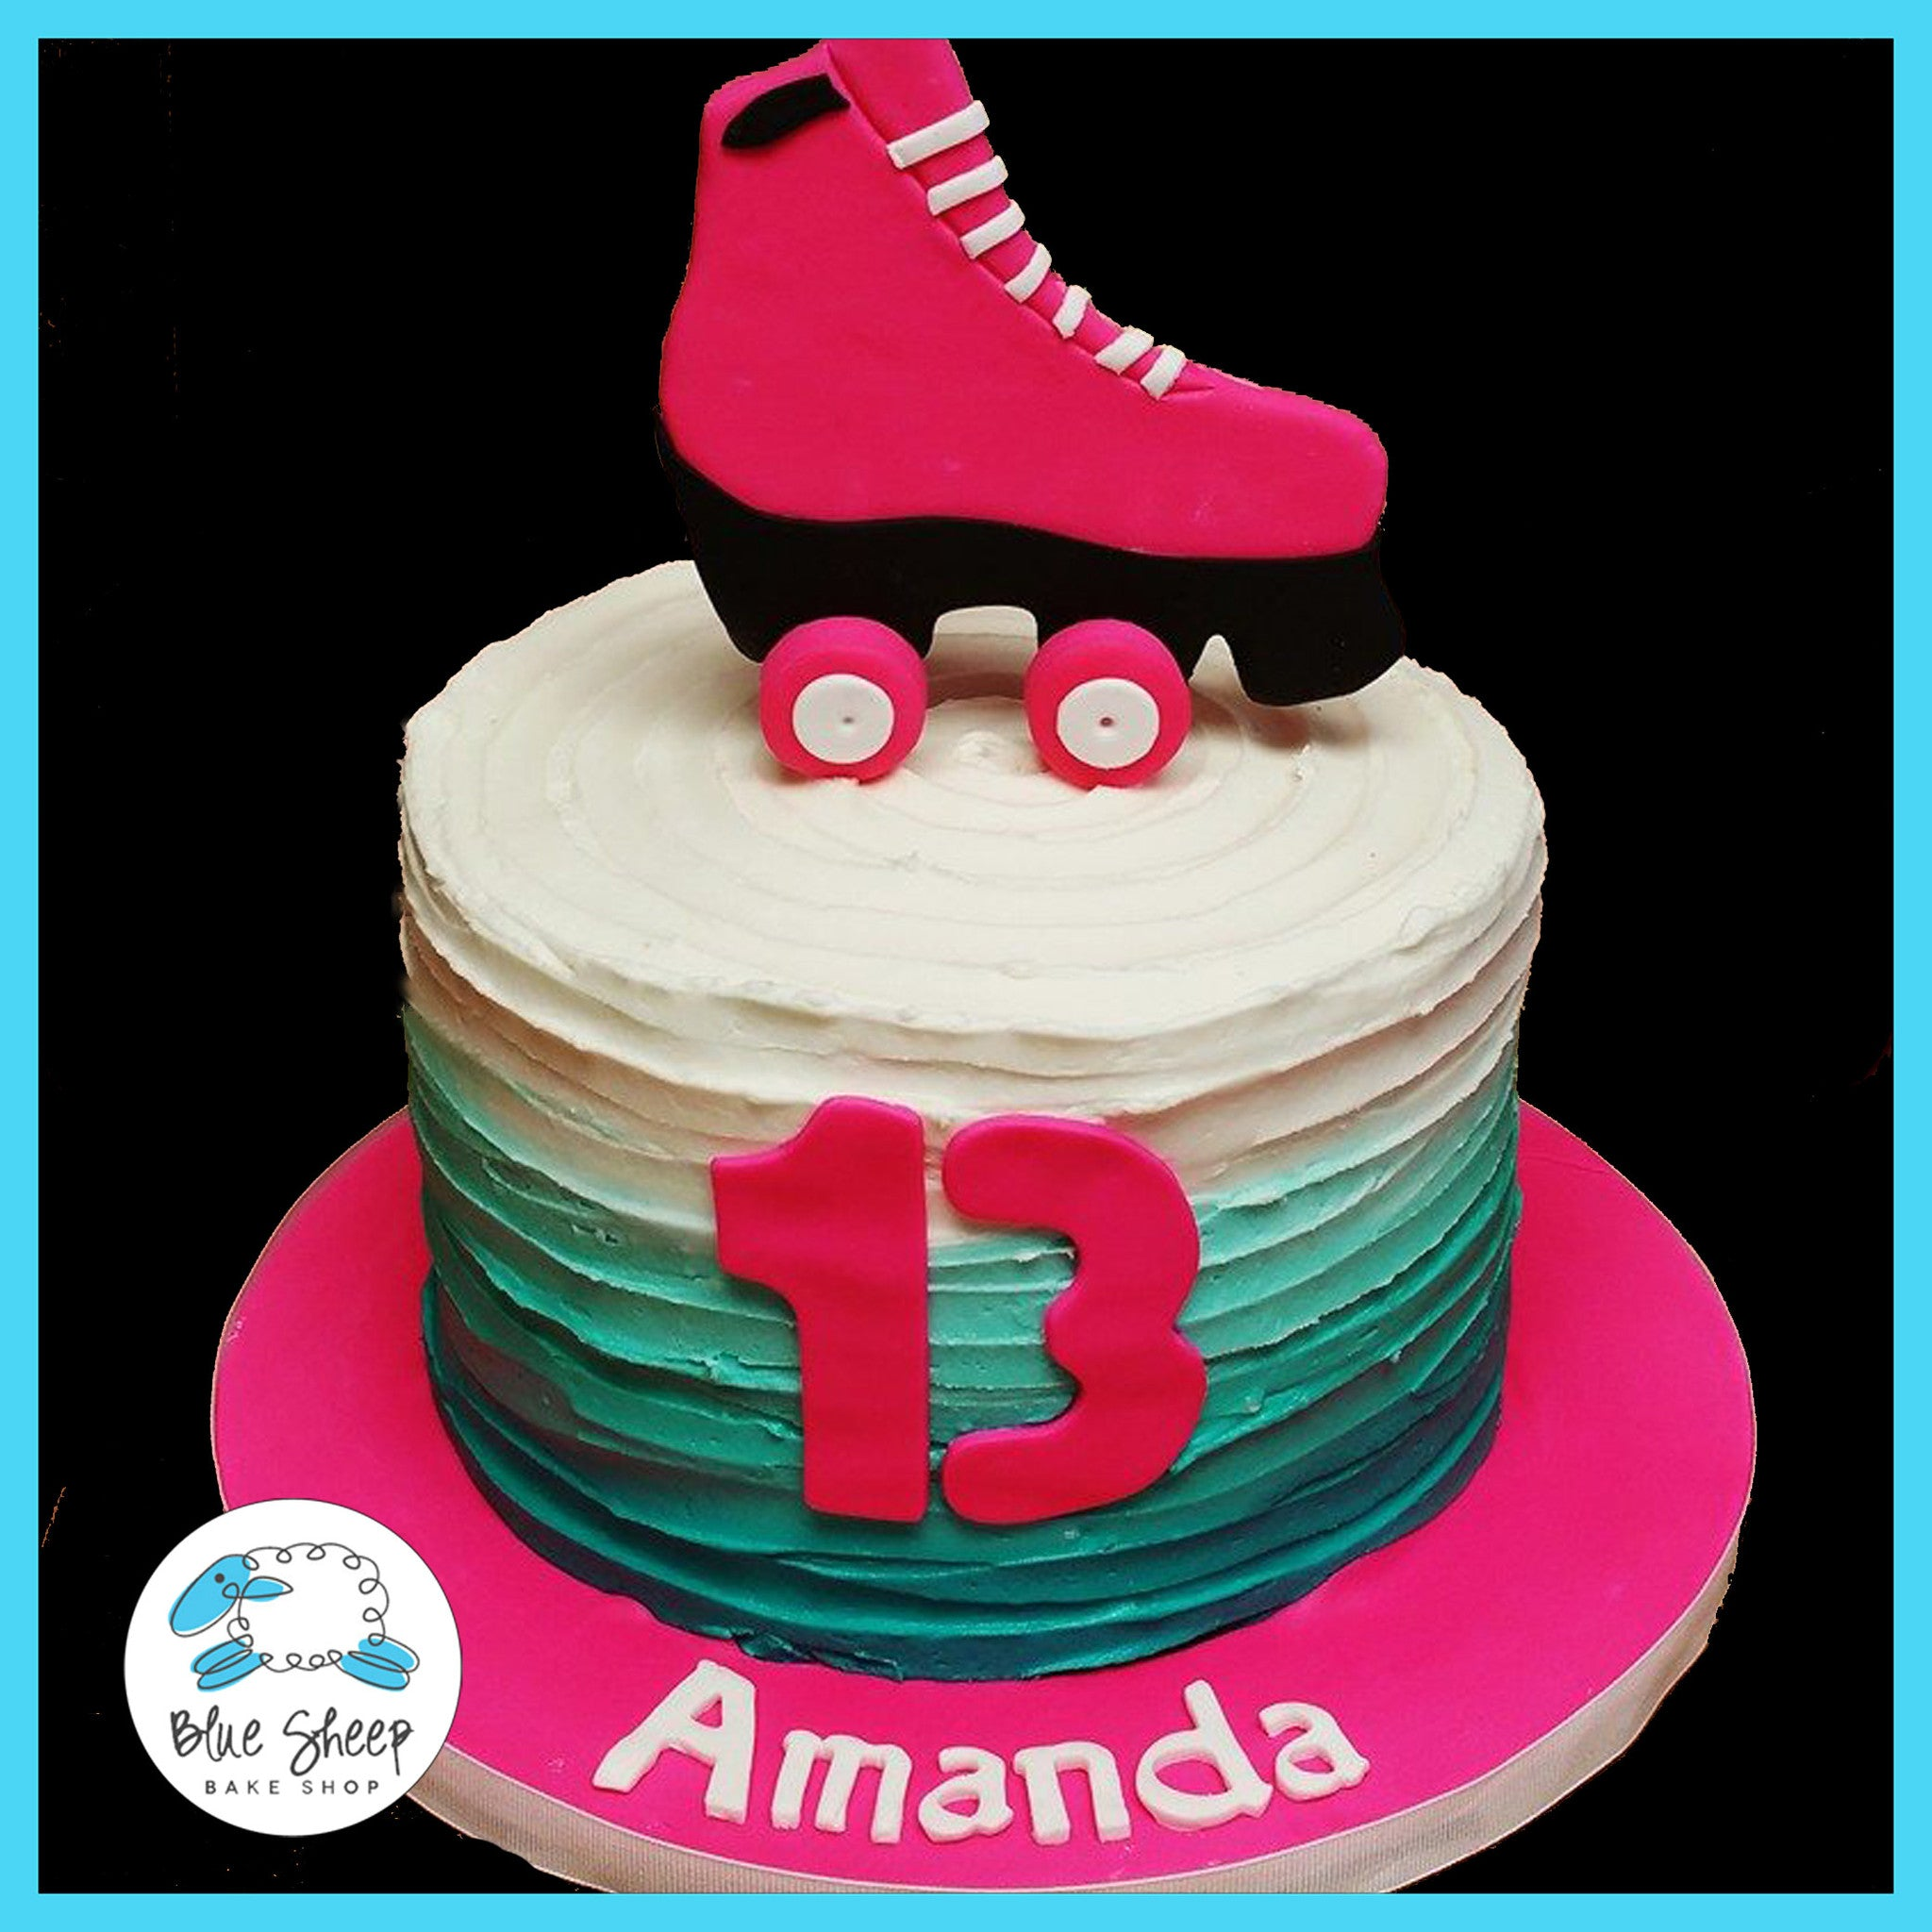 Pleasing Buttercream Rollerskate Birthday Cake Blue Sheep Bake Shop Personalised Birthday Cards Petedlily Jamesorg